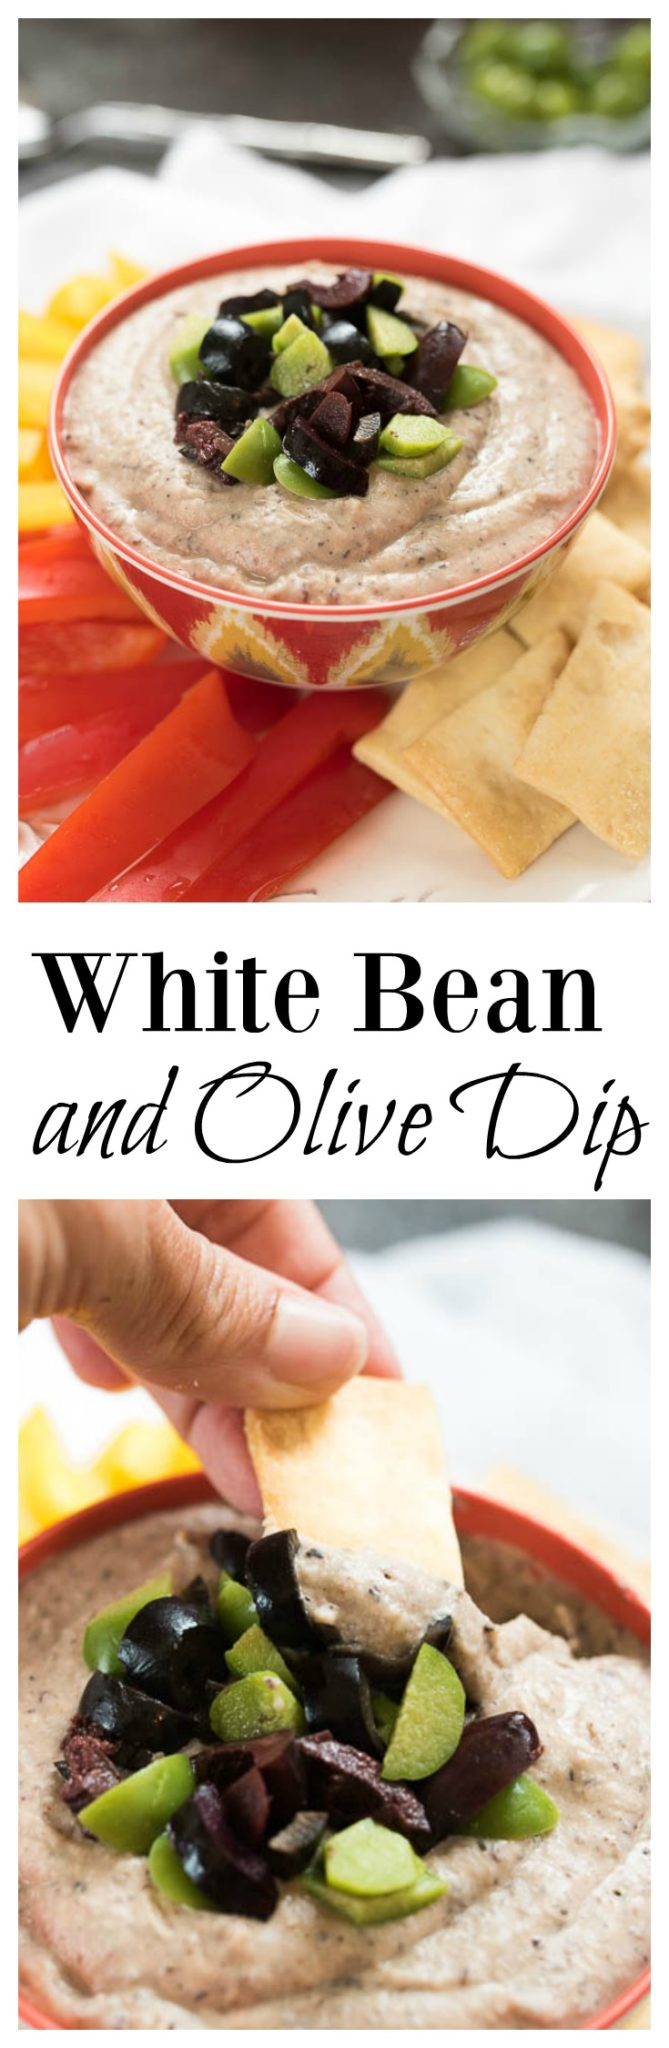 White Bean and Olive DIp- use this as a Veggie sandwich spread or a dip for crackers. Super easy to make with basic pantry ingredients.